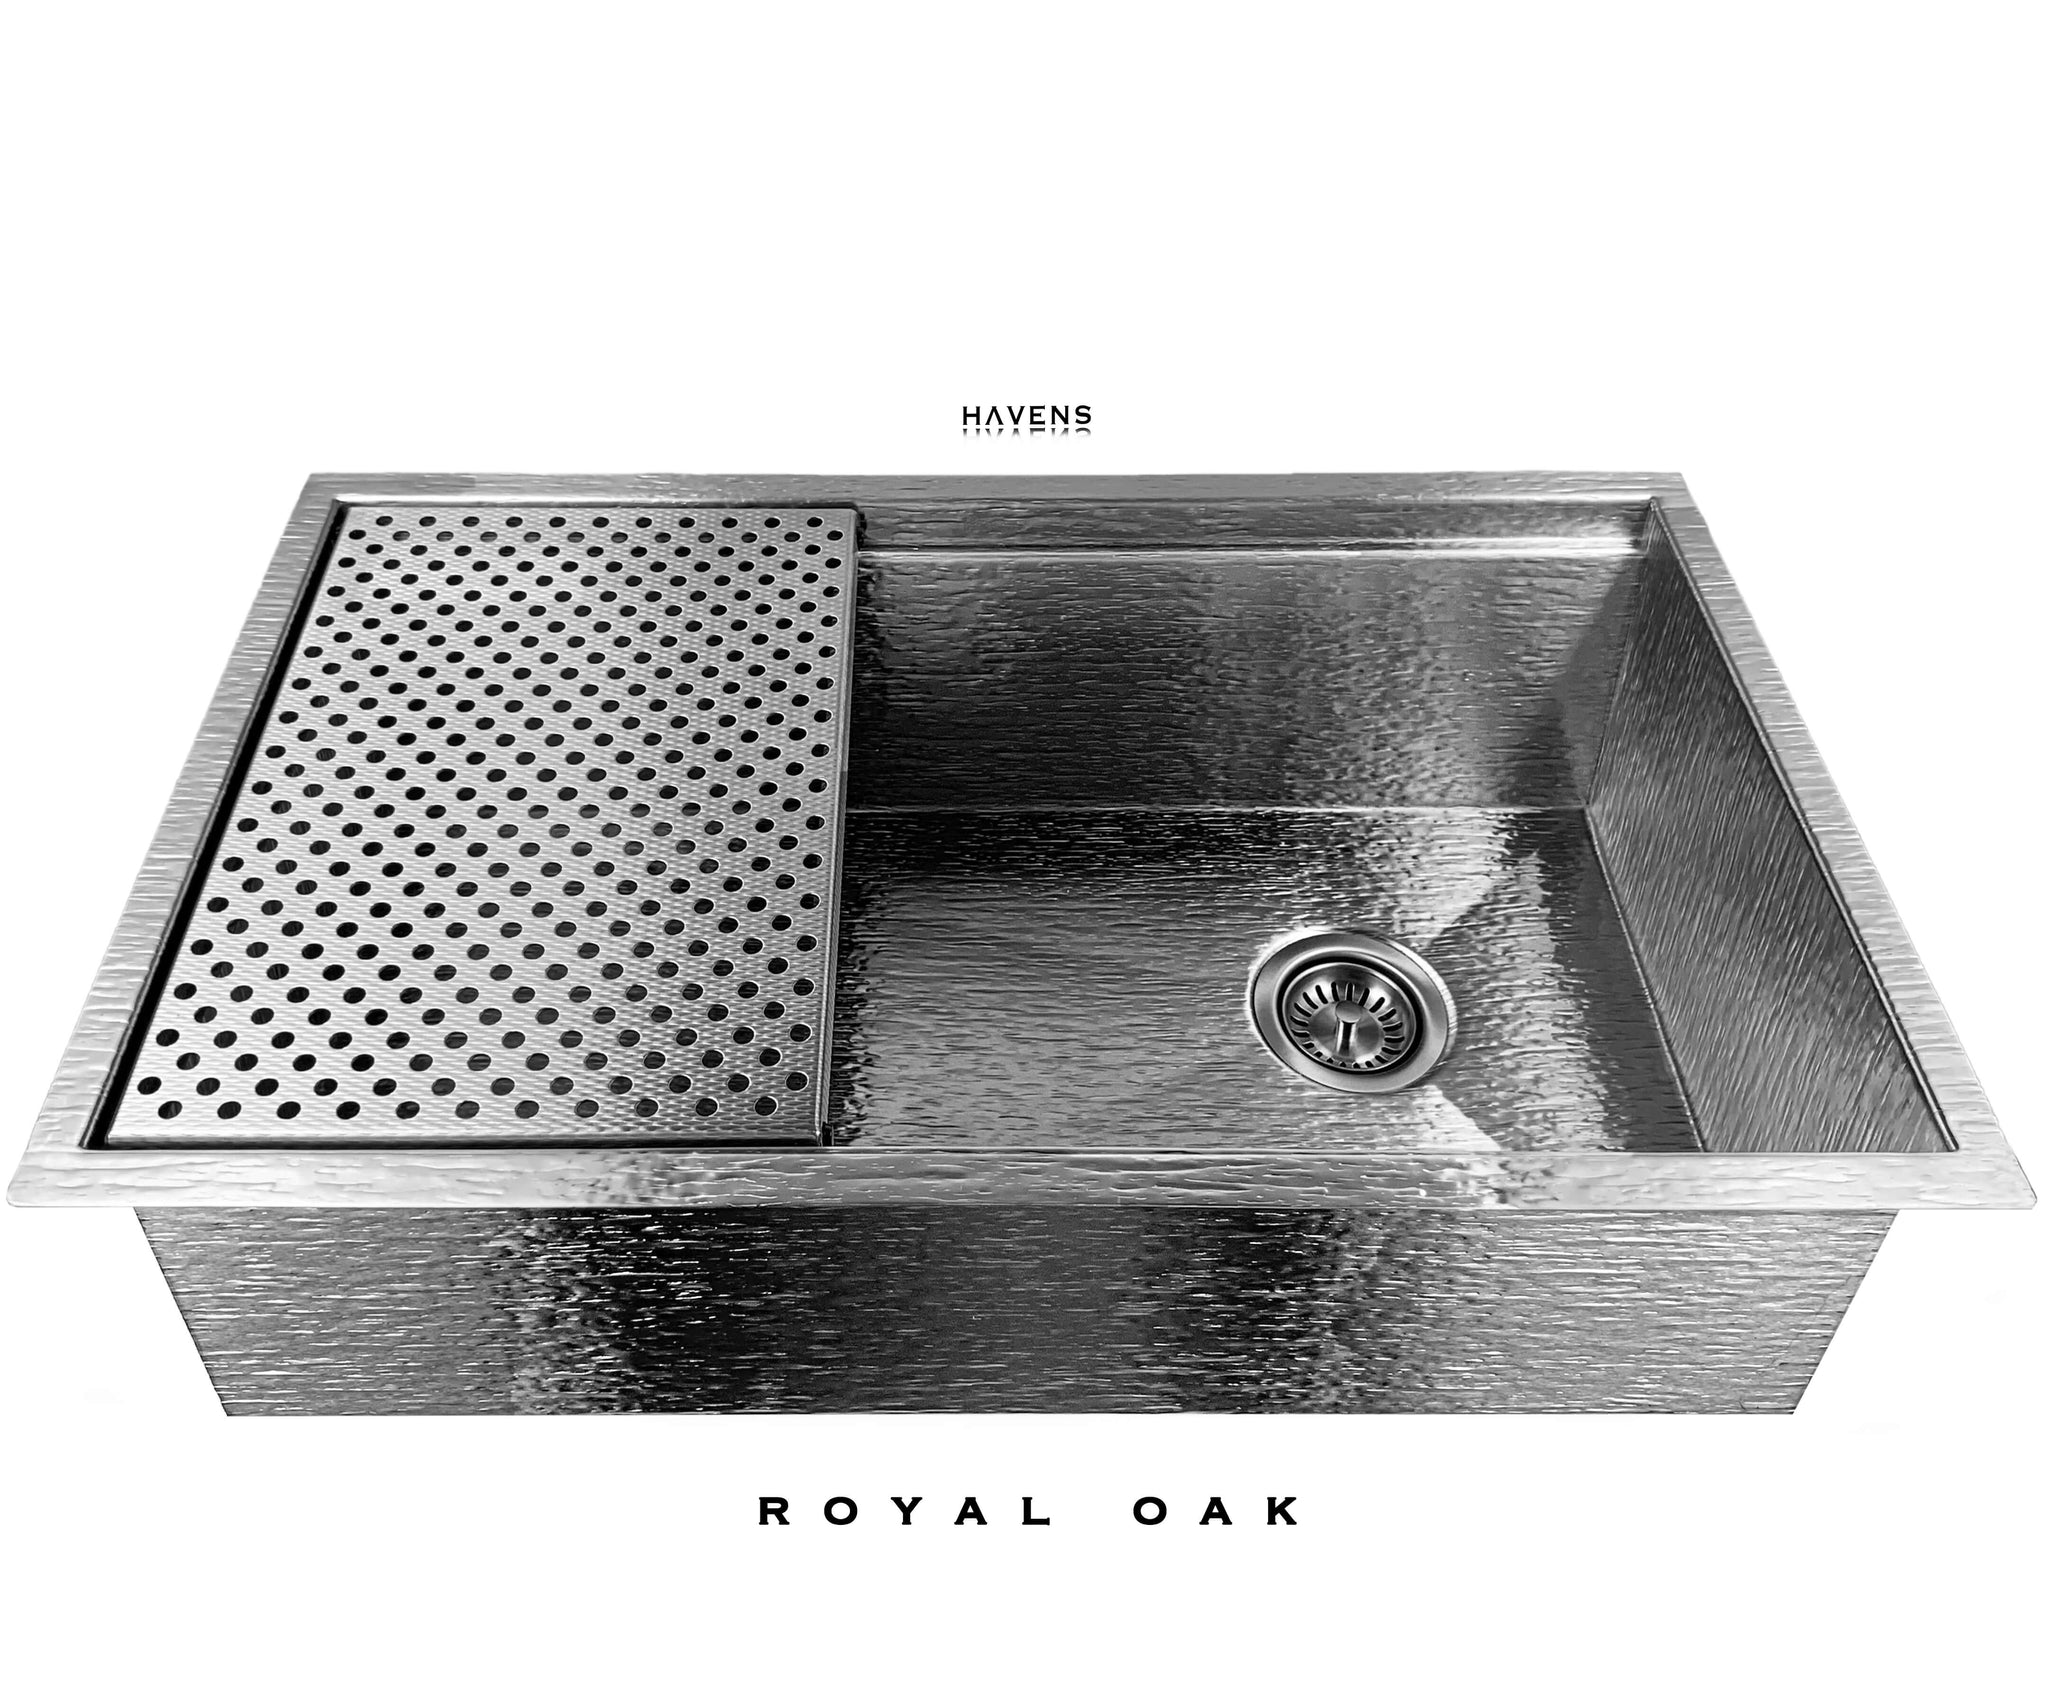 Legacy Undermount Sink - Royal Oak Stainless